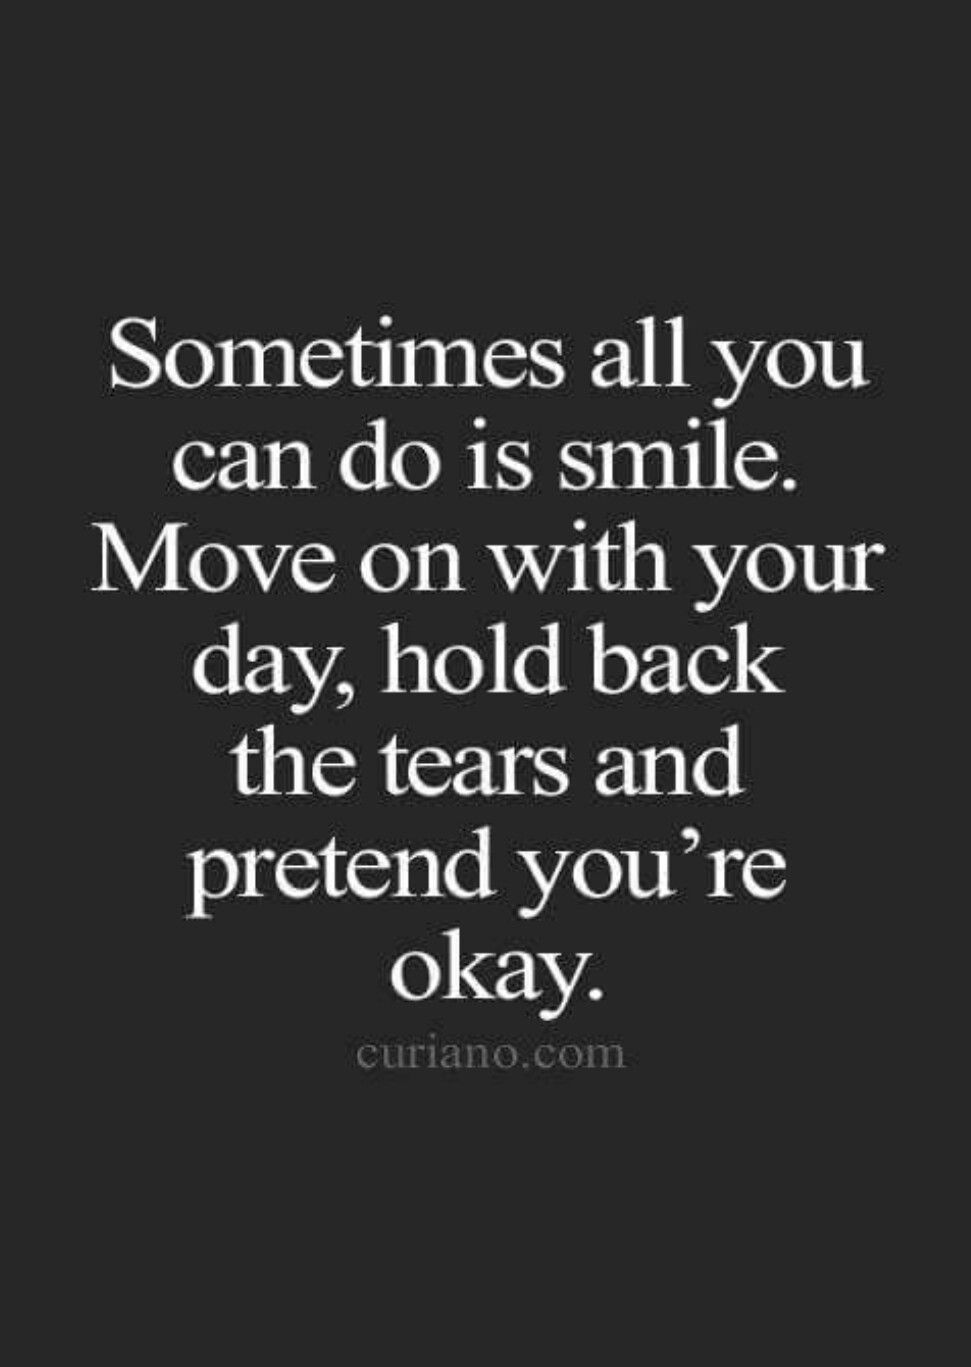 Hurtful Quotes Pinisla Hughes On Quotes  Pinterest  Qoutes Dying Inside And .